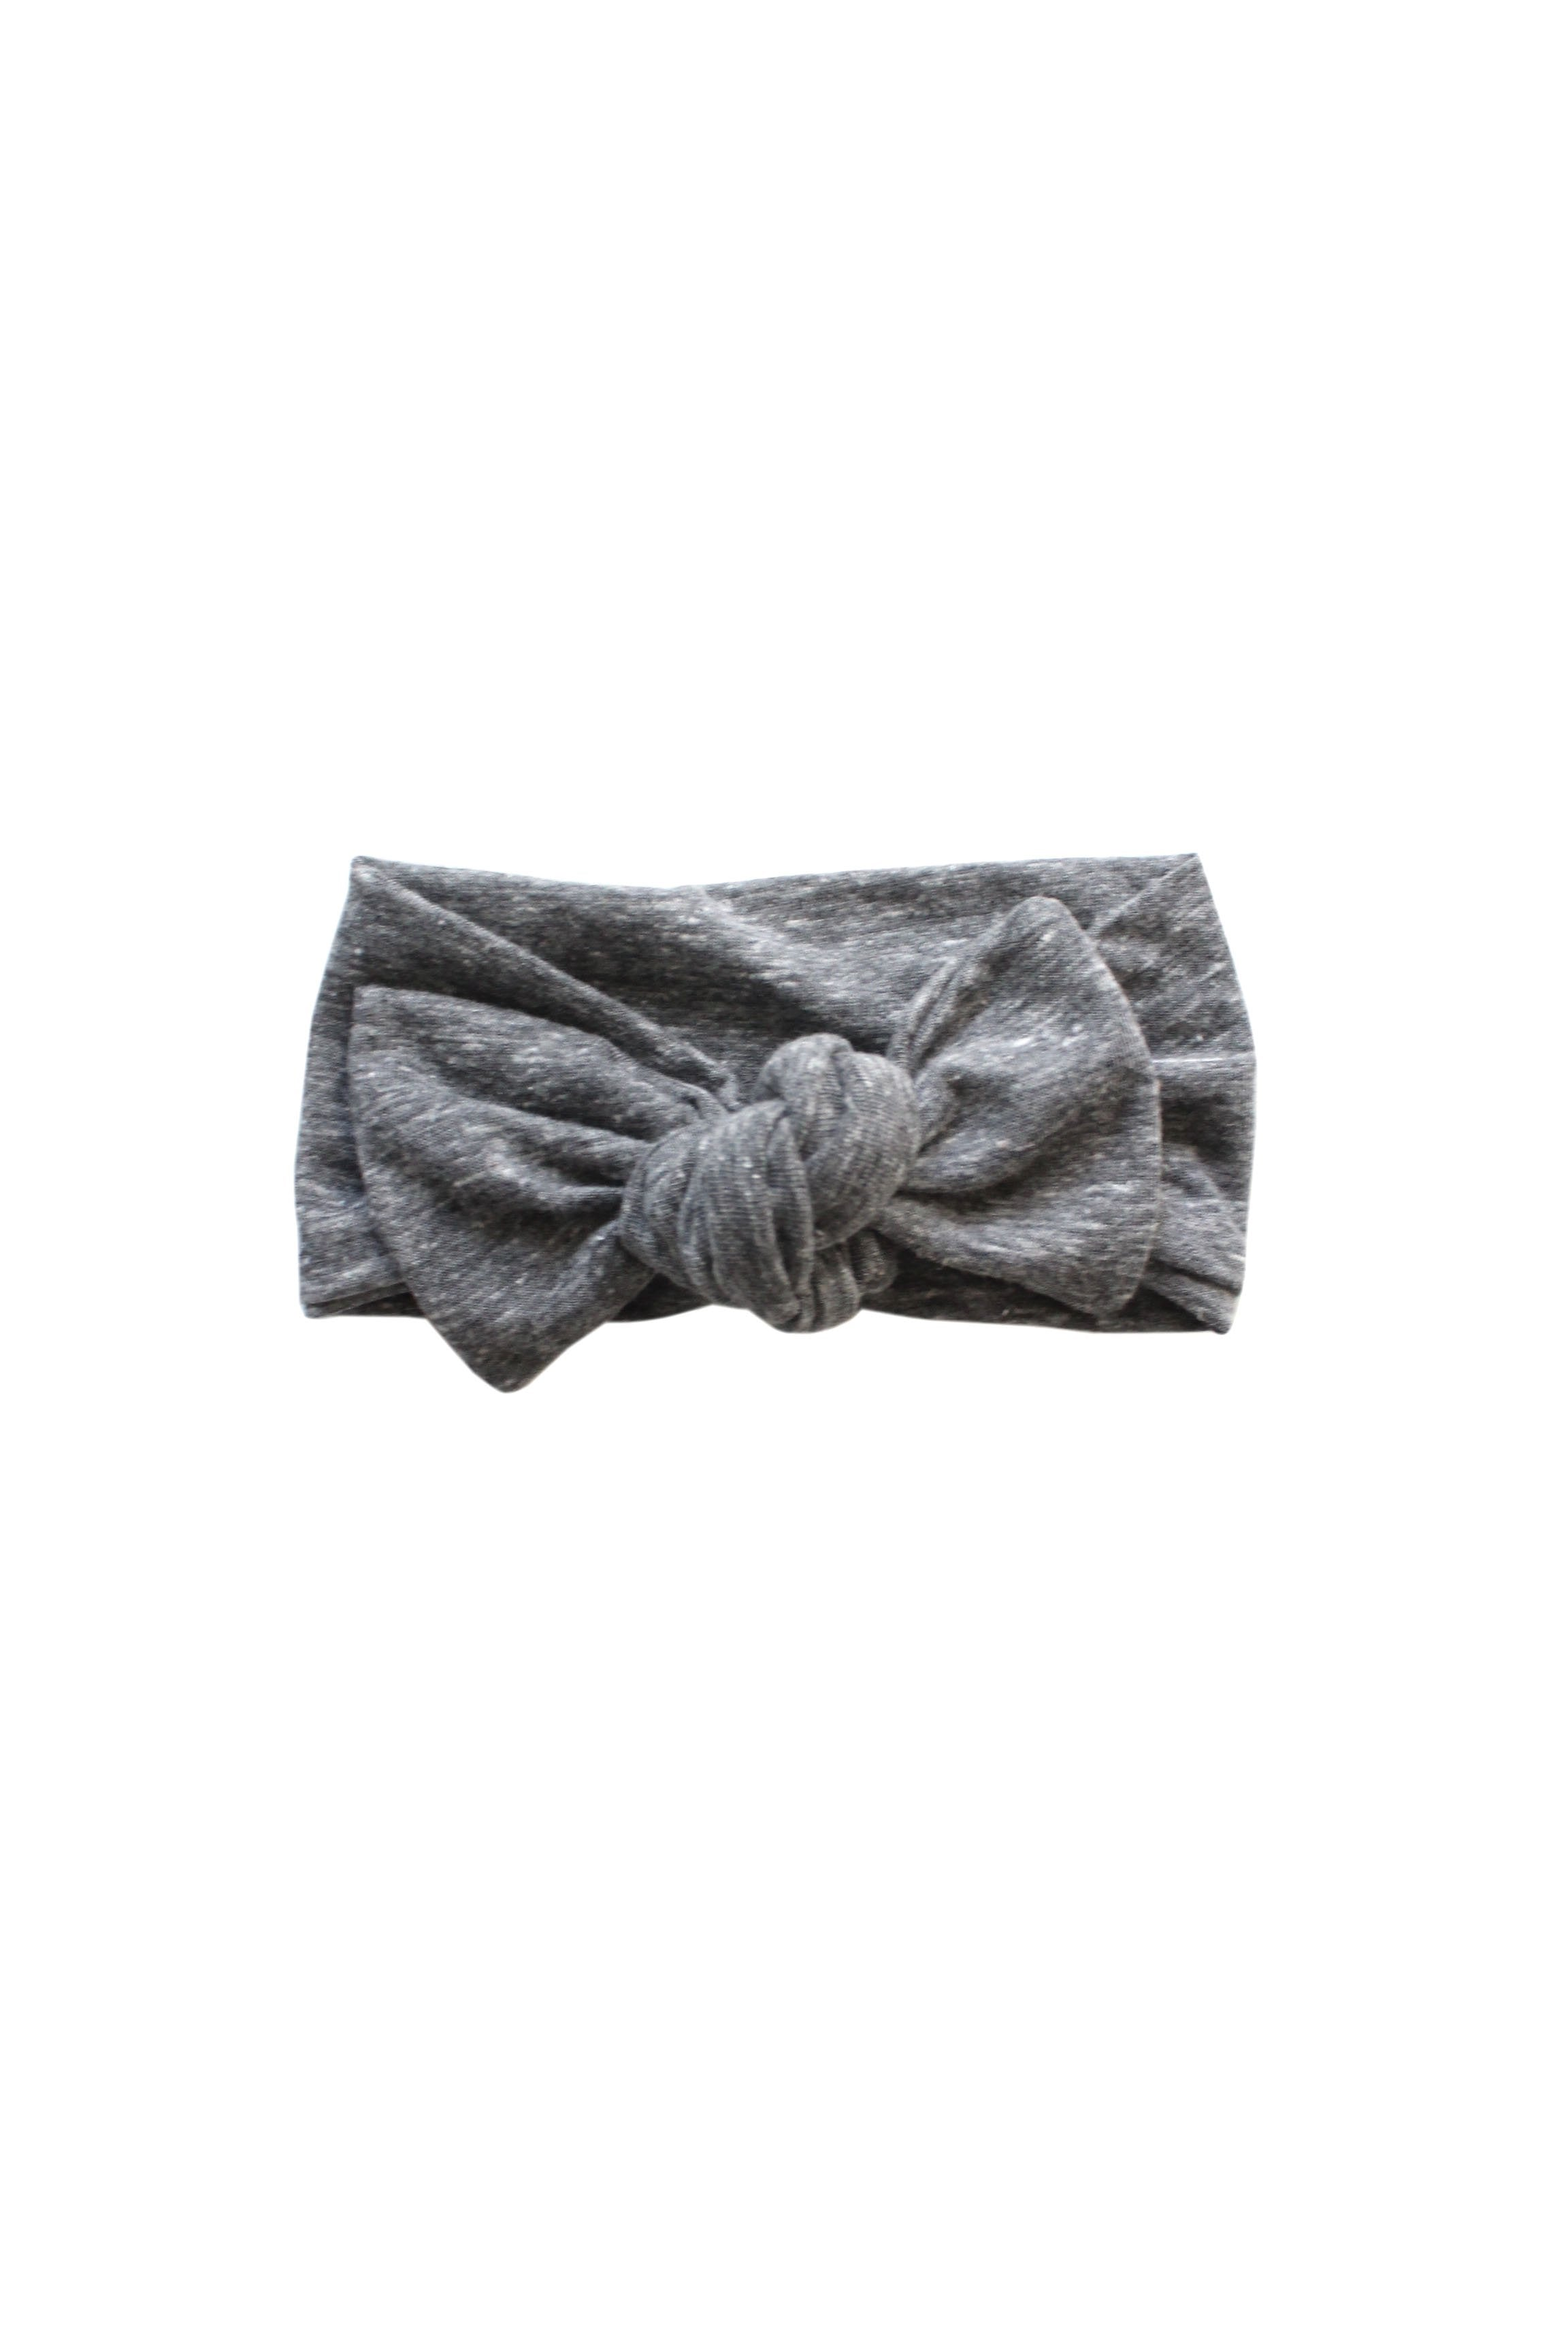 Tri-Blend Grey Knotted Headband